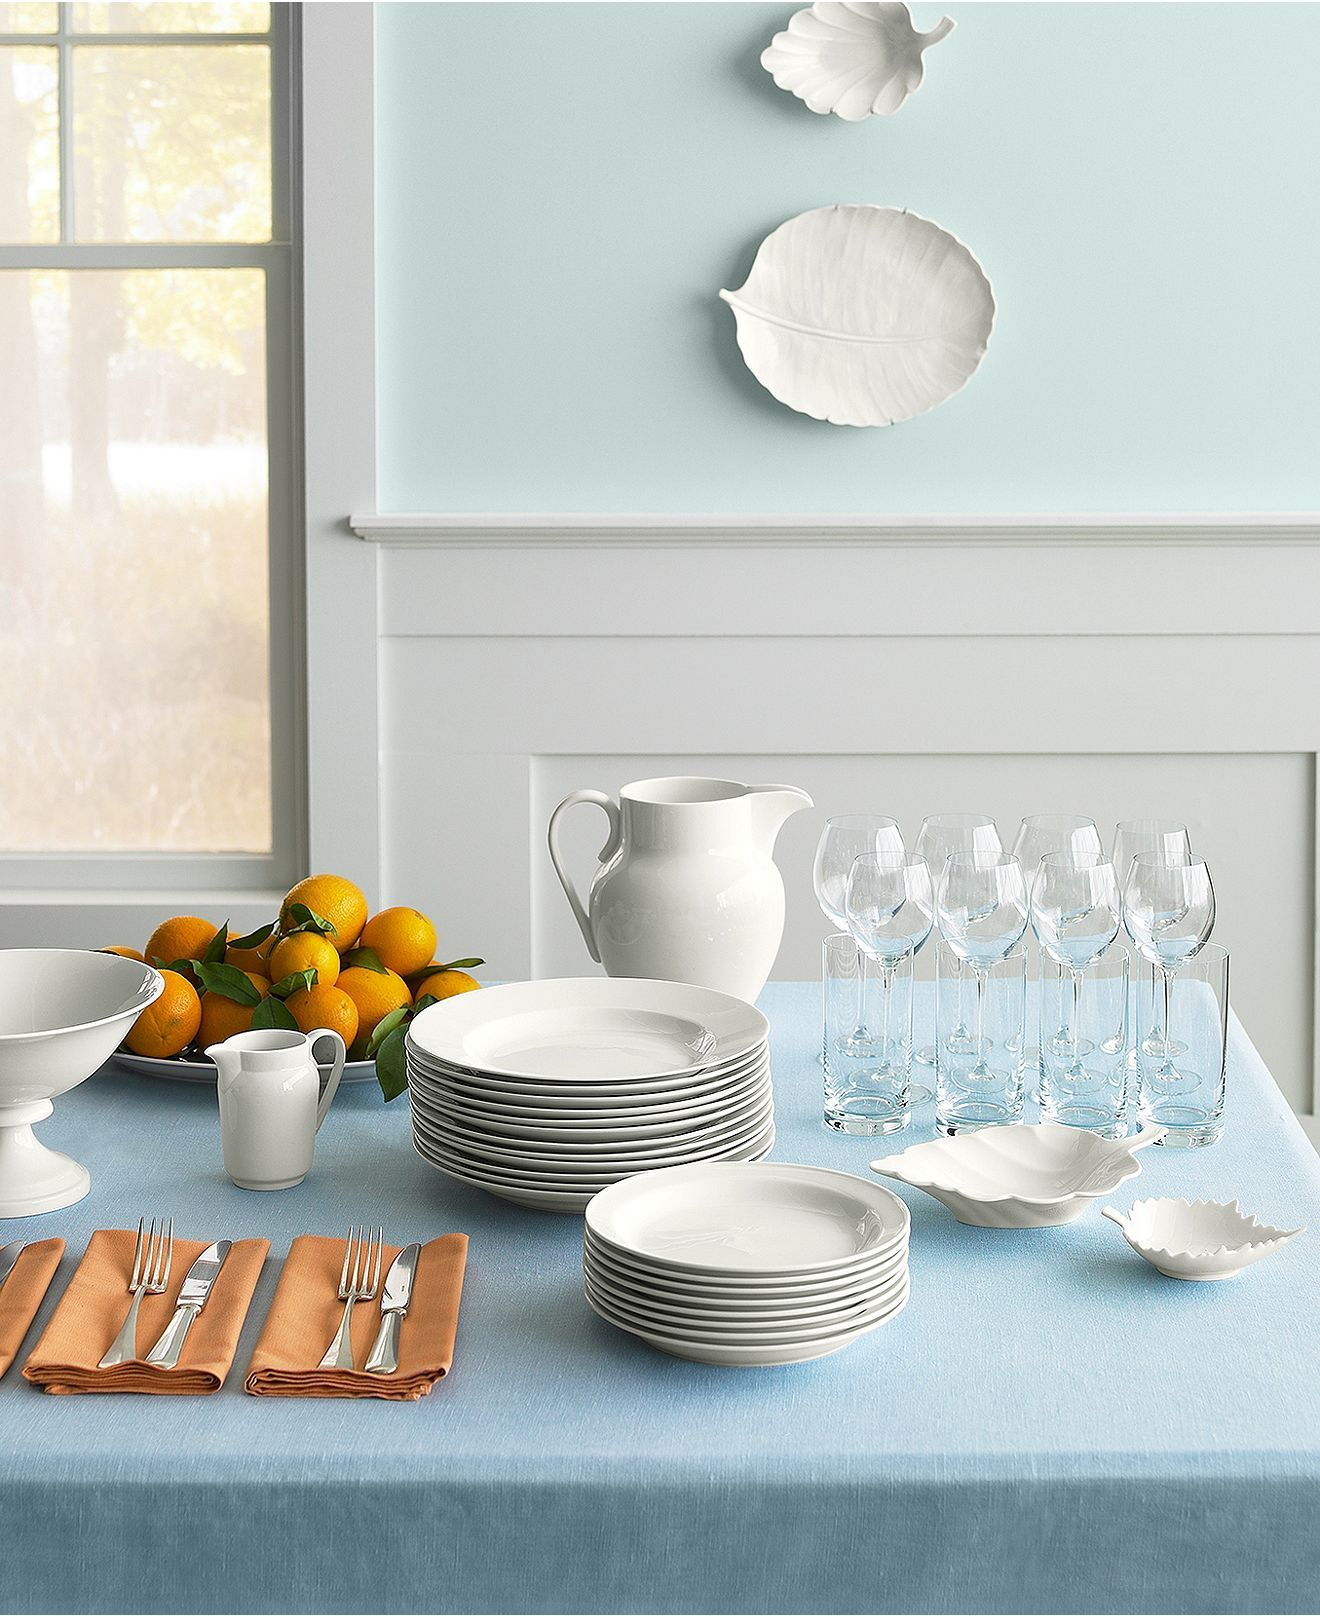 Martha Stewart for Macy's: The simple elegance of basic whiteware is ideal for everyday use.